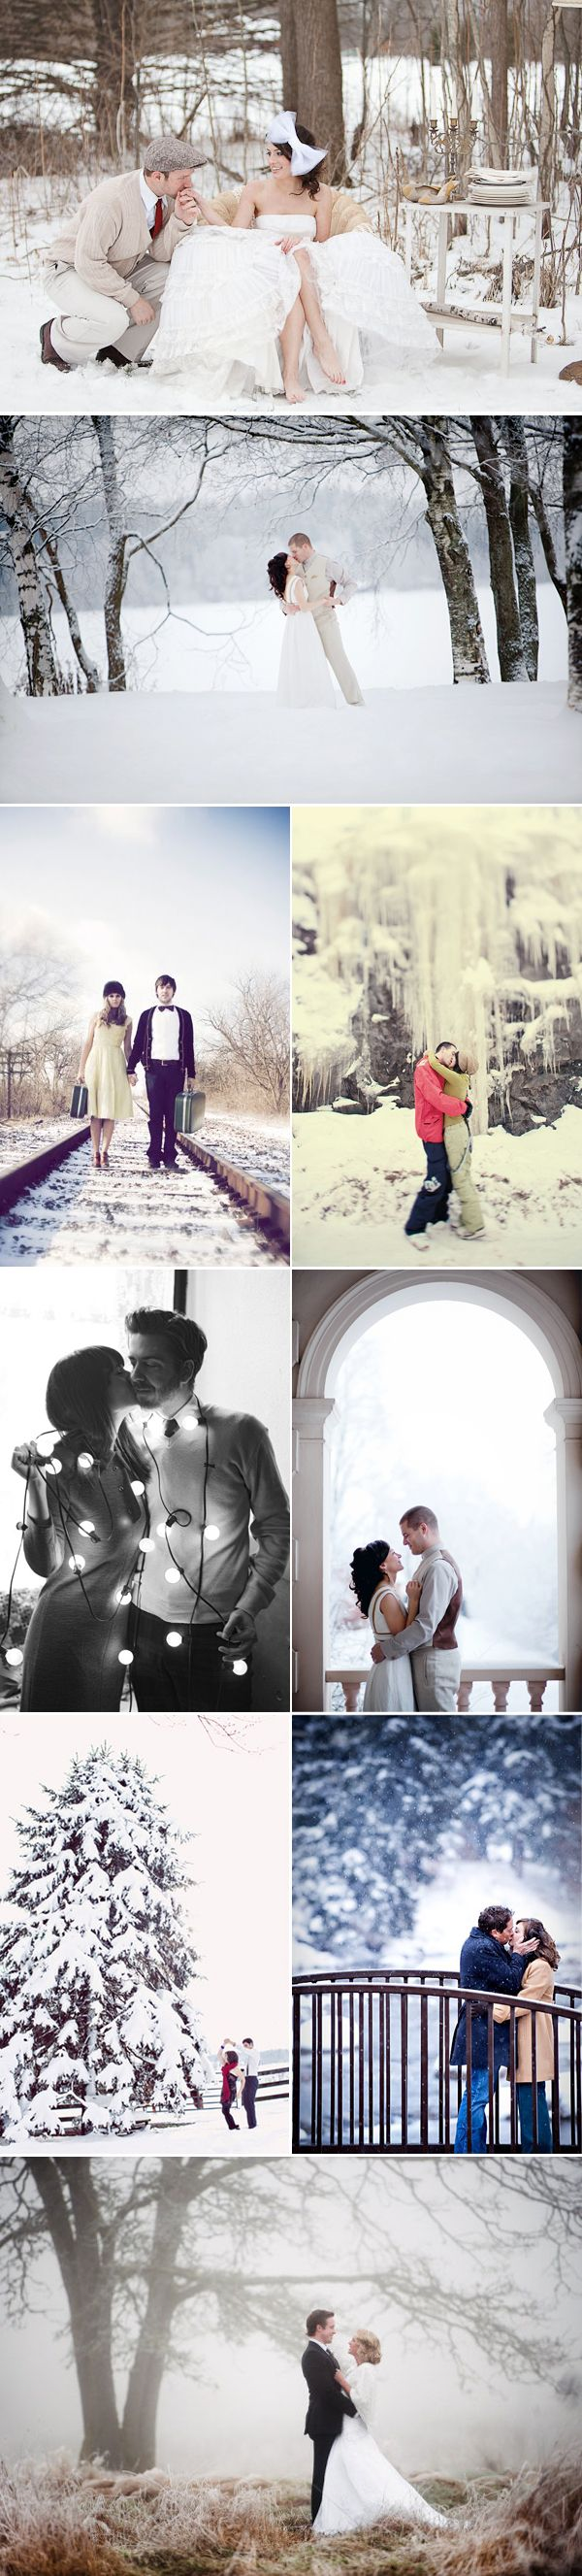 Love the winter engagement photos!!!